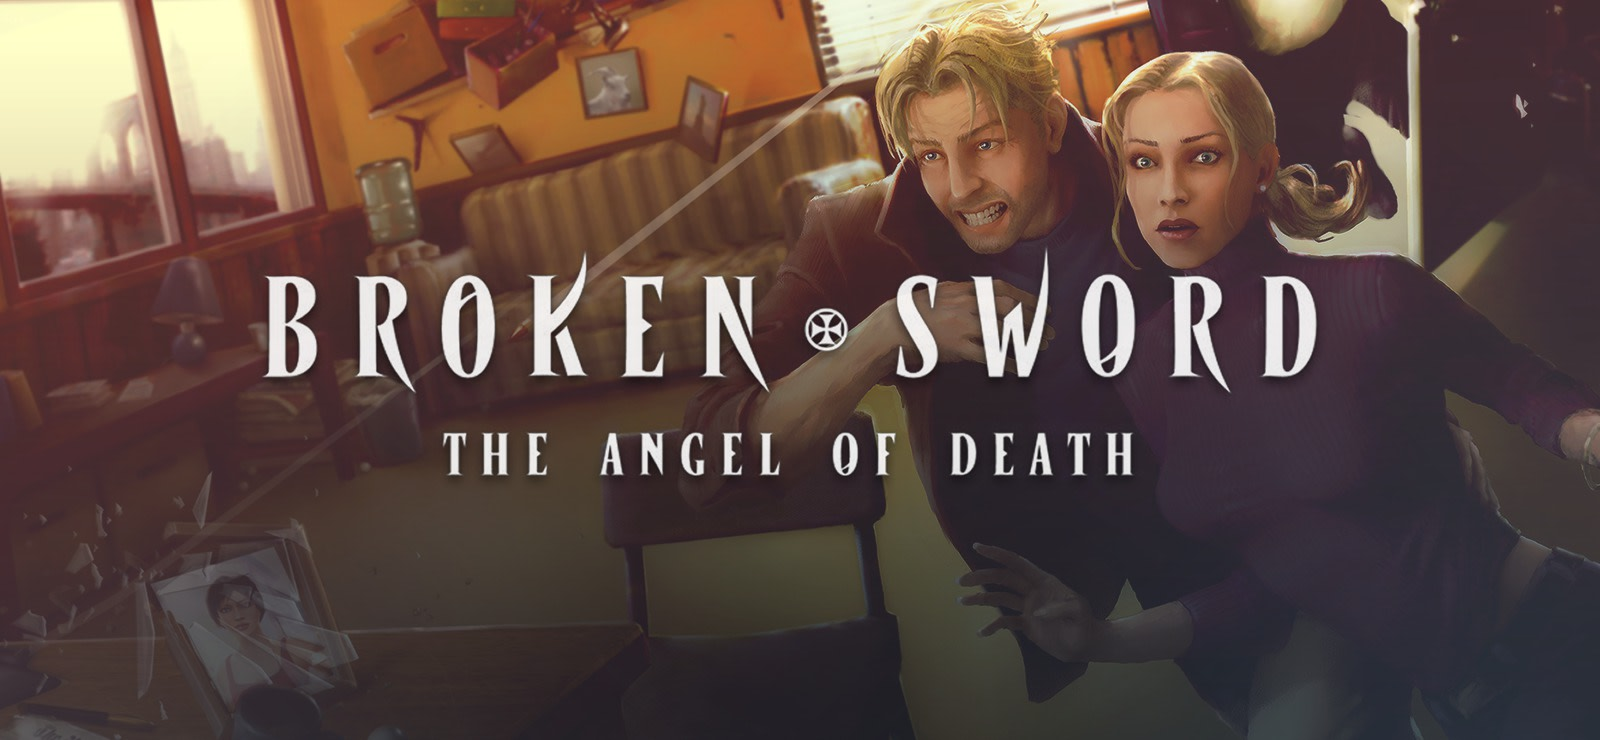 Broken Sword 4: The Angel Of Death (Secrets Of The Ark)